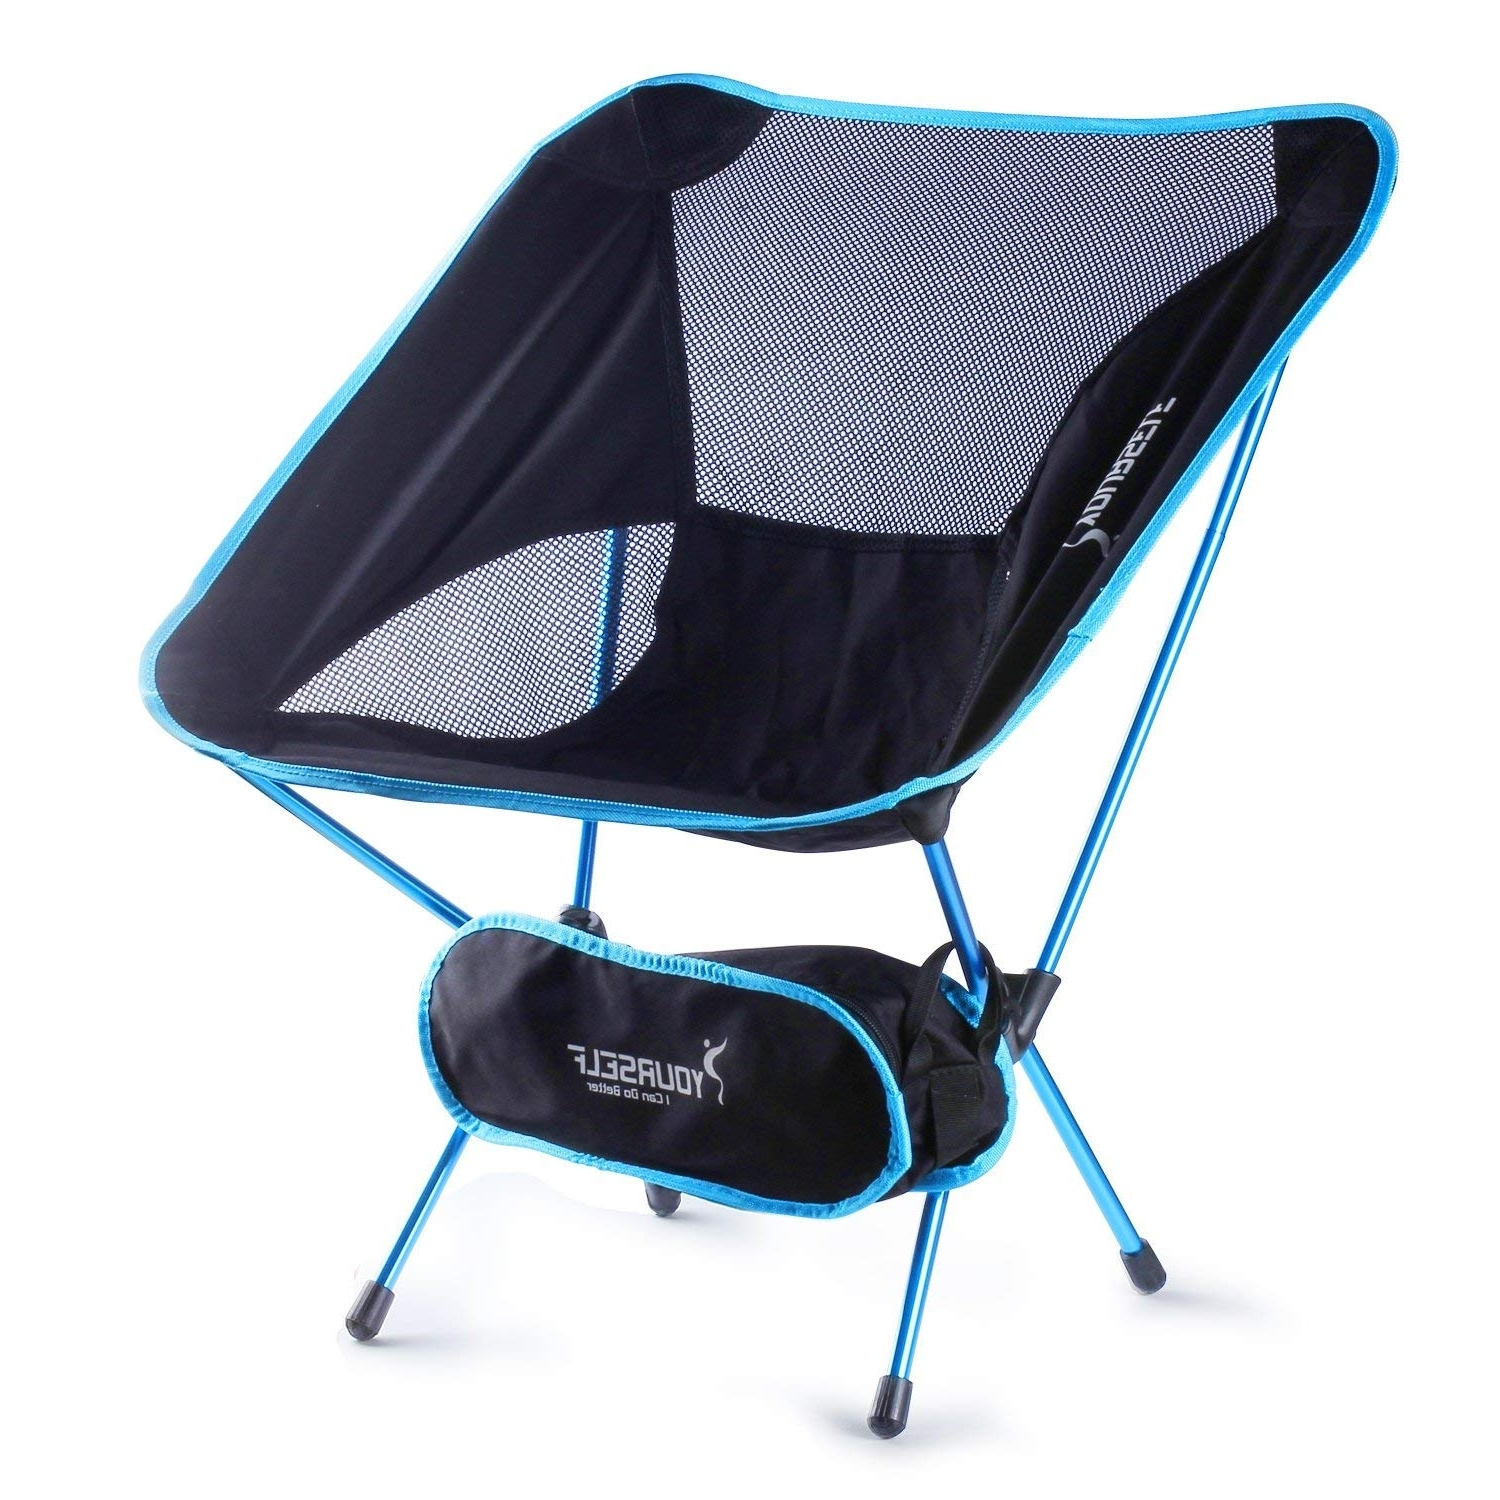 Amazon : Syourself Portable Folding Camping Chair Lightweight Pertaining To Recent Alexa Firecracker Side Chairs (View 17 of 20)